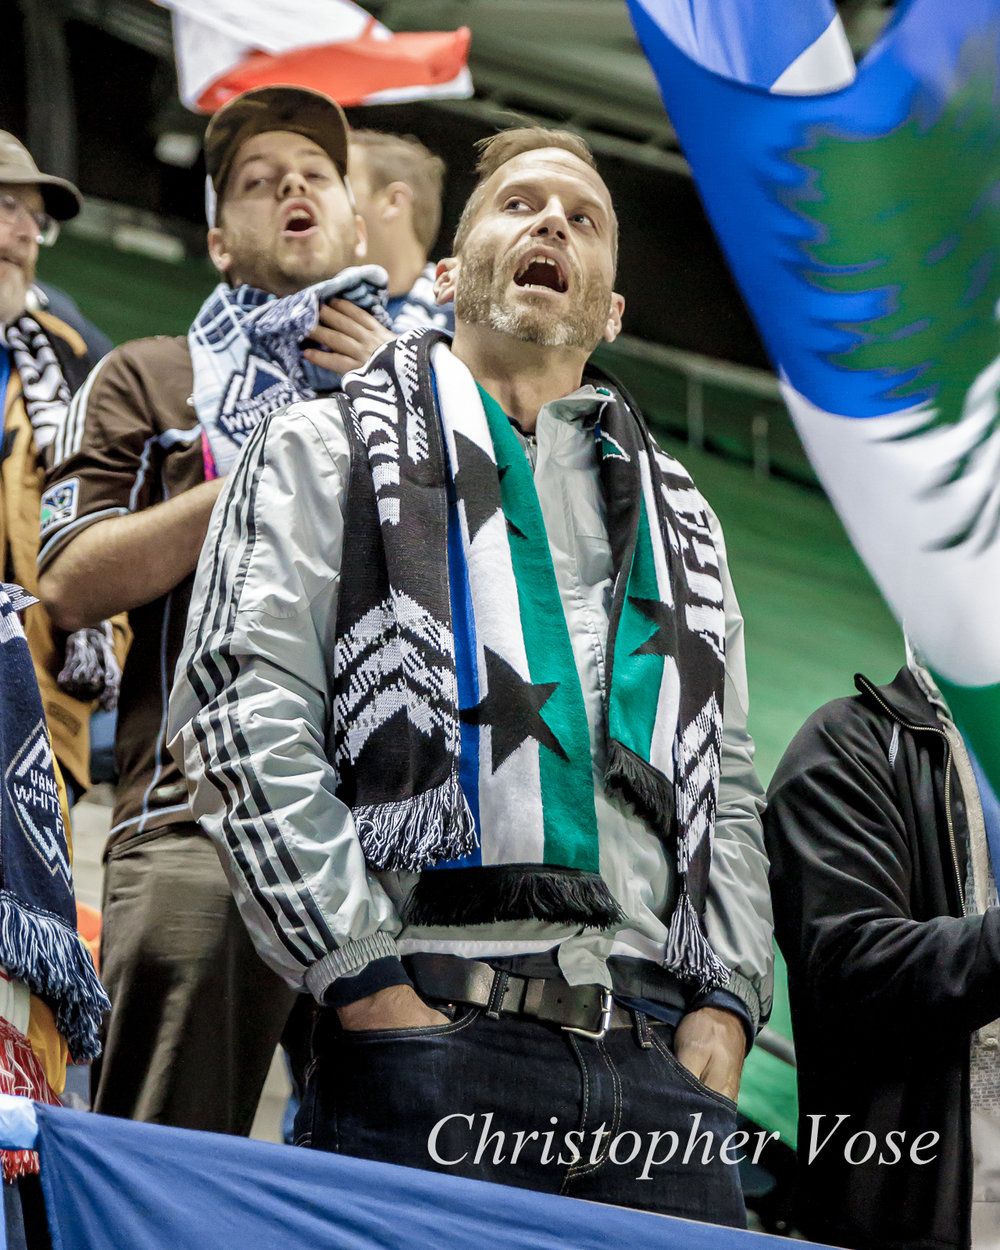 2017-11-02 Vancouver Whitecaps FC Supporter.jpg